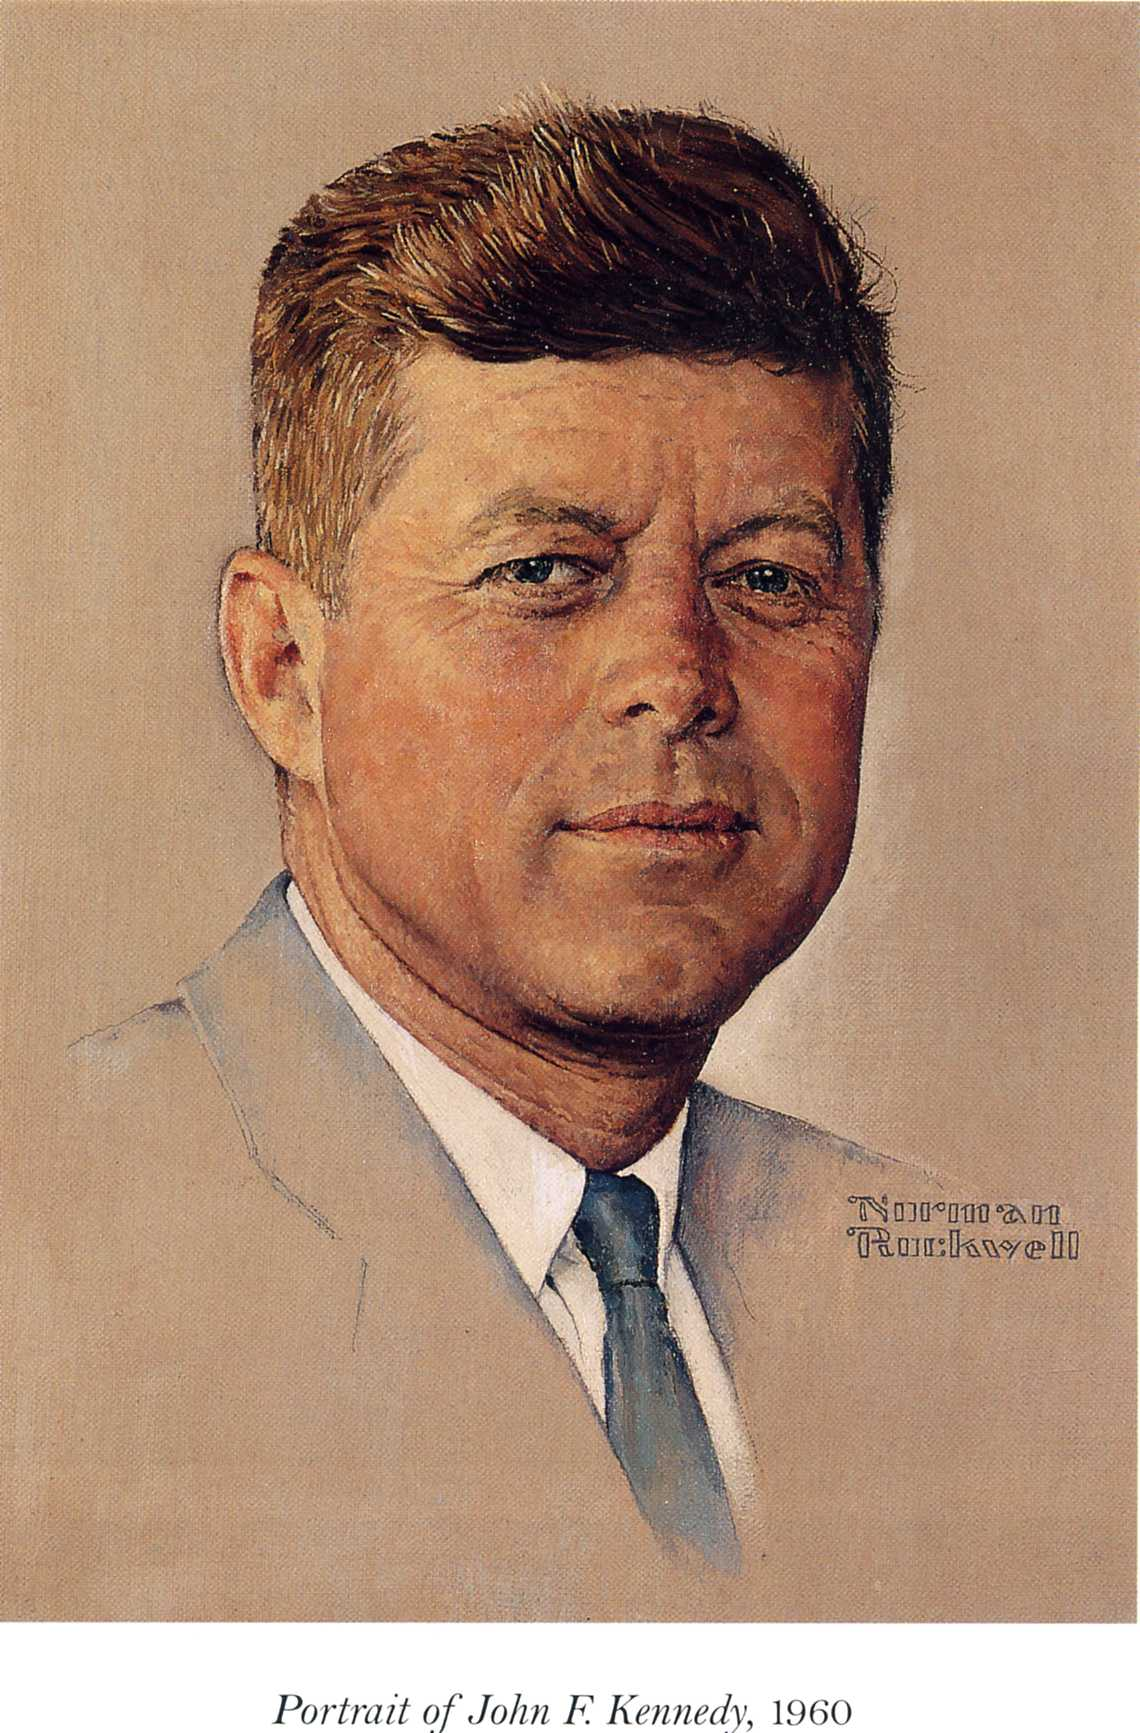 Portrait of John F.Kennedy, 1960